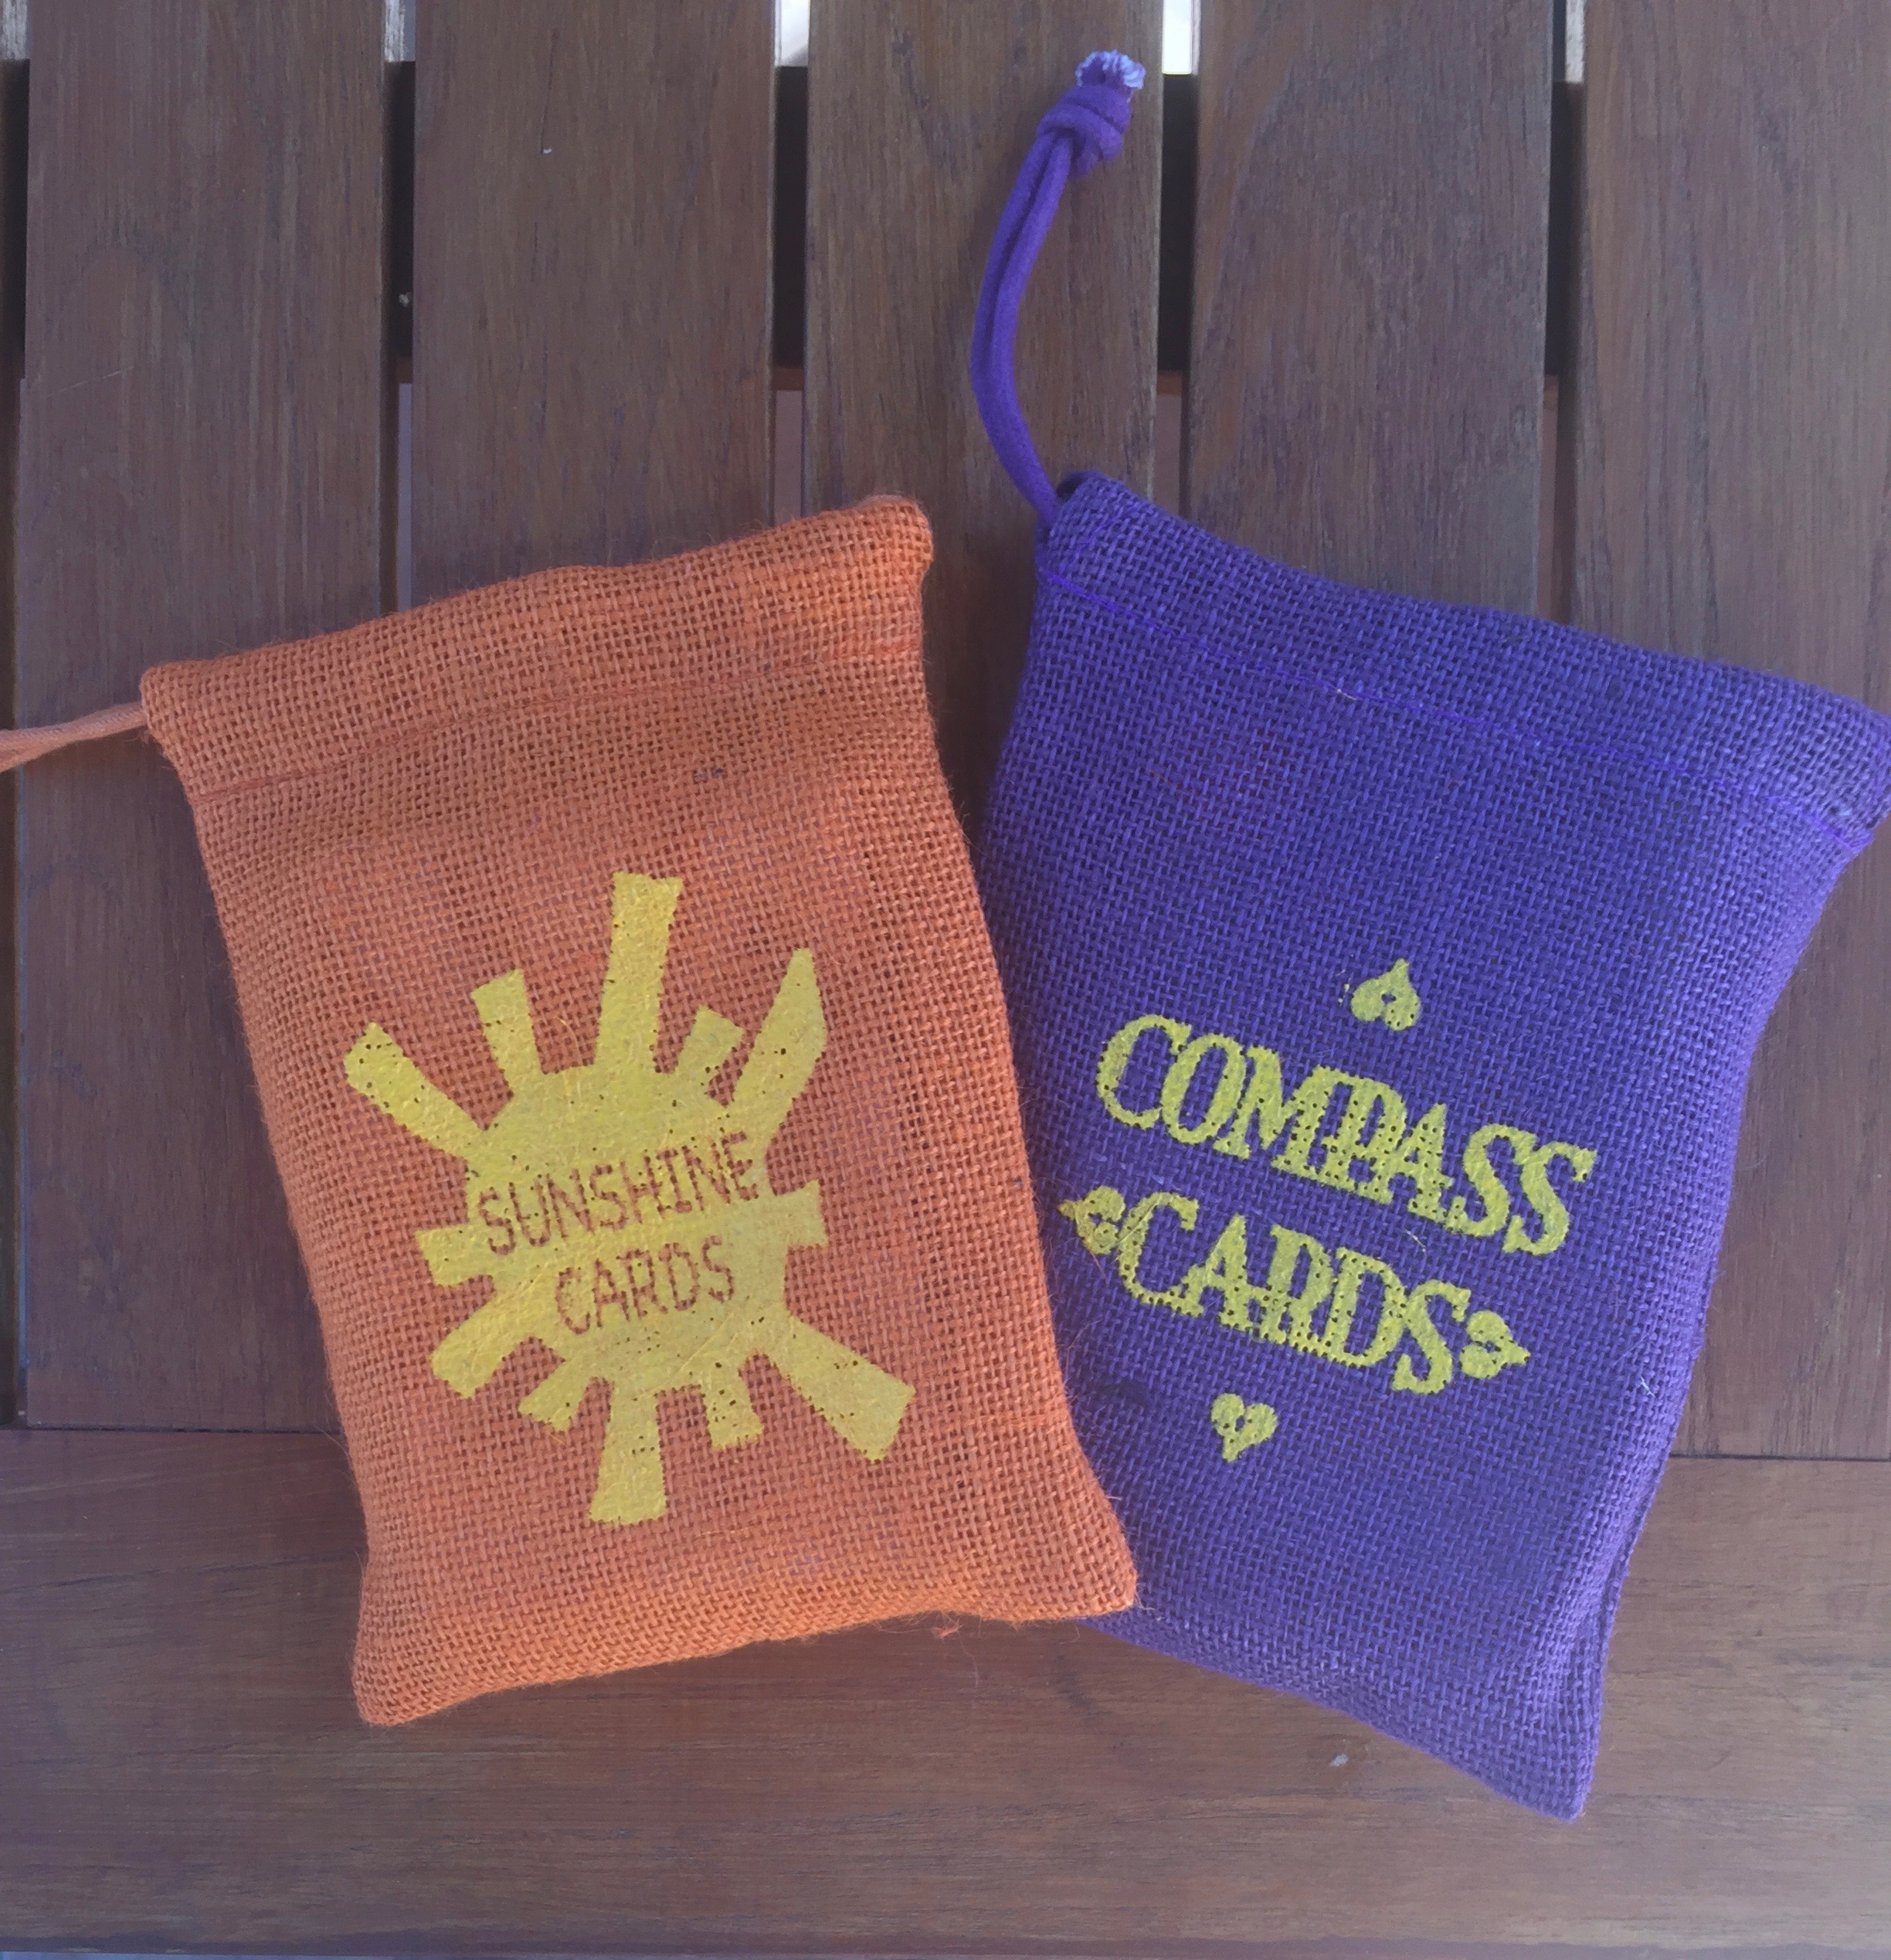 Sunshine and Compass Cards Set, by Melissa Granchi, 58 cards per deck packaged individually in a burlap sack